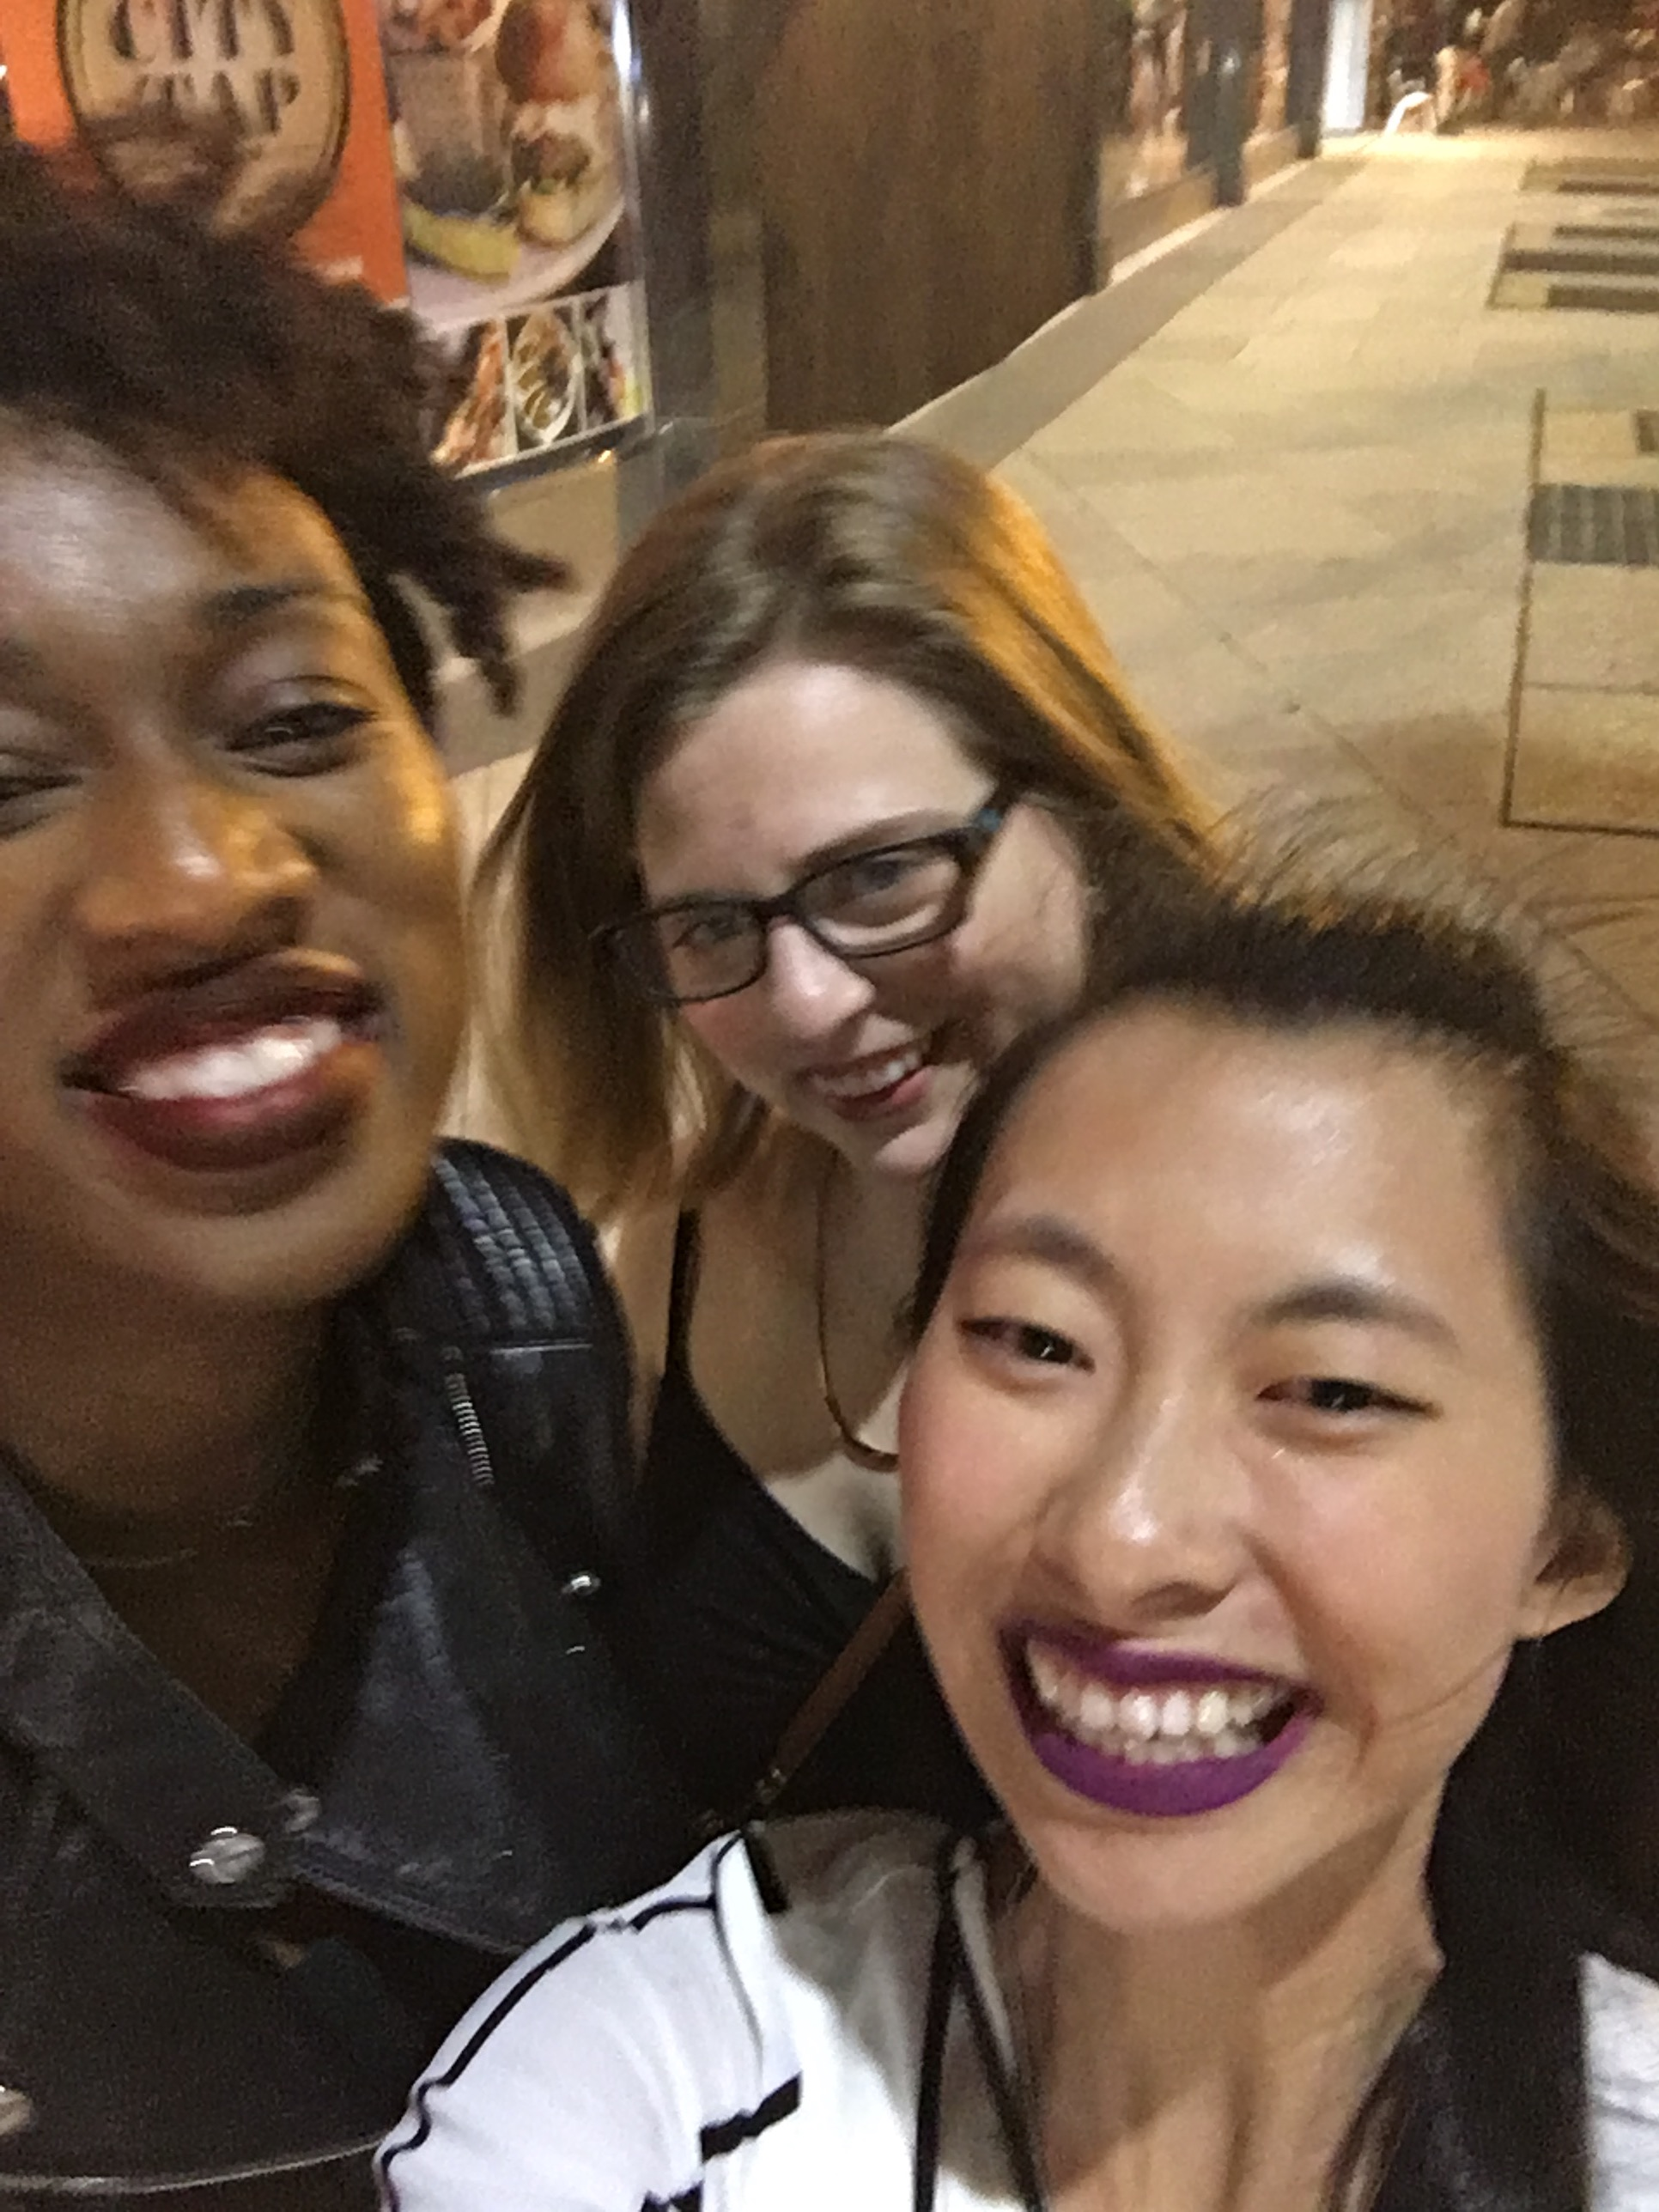 Tuesday shenanigans were had with these lovely, blurry ladies.